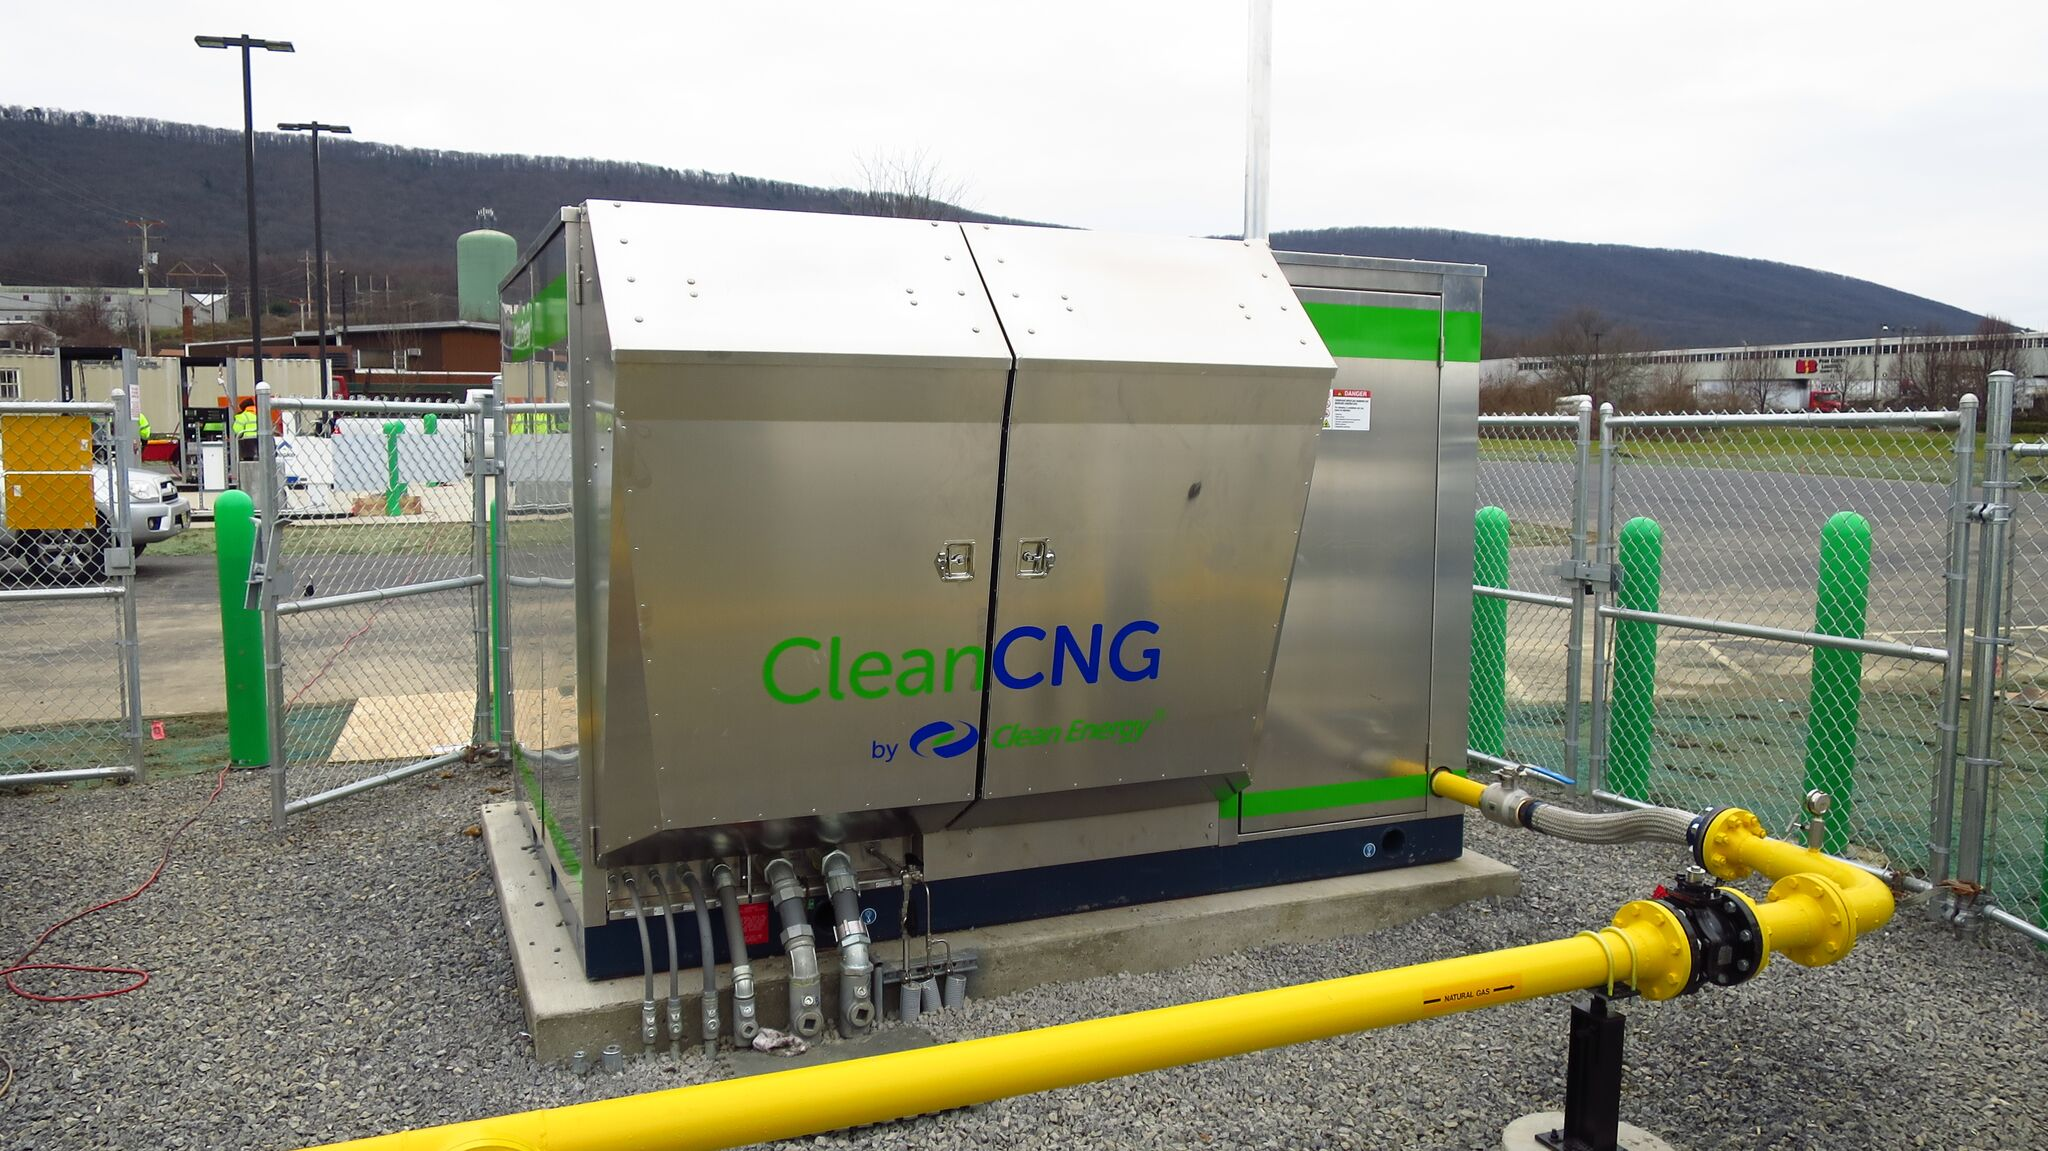 Clean Energy announces the CleanCNG heavy-duty compressor